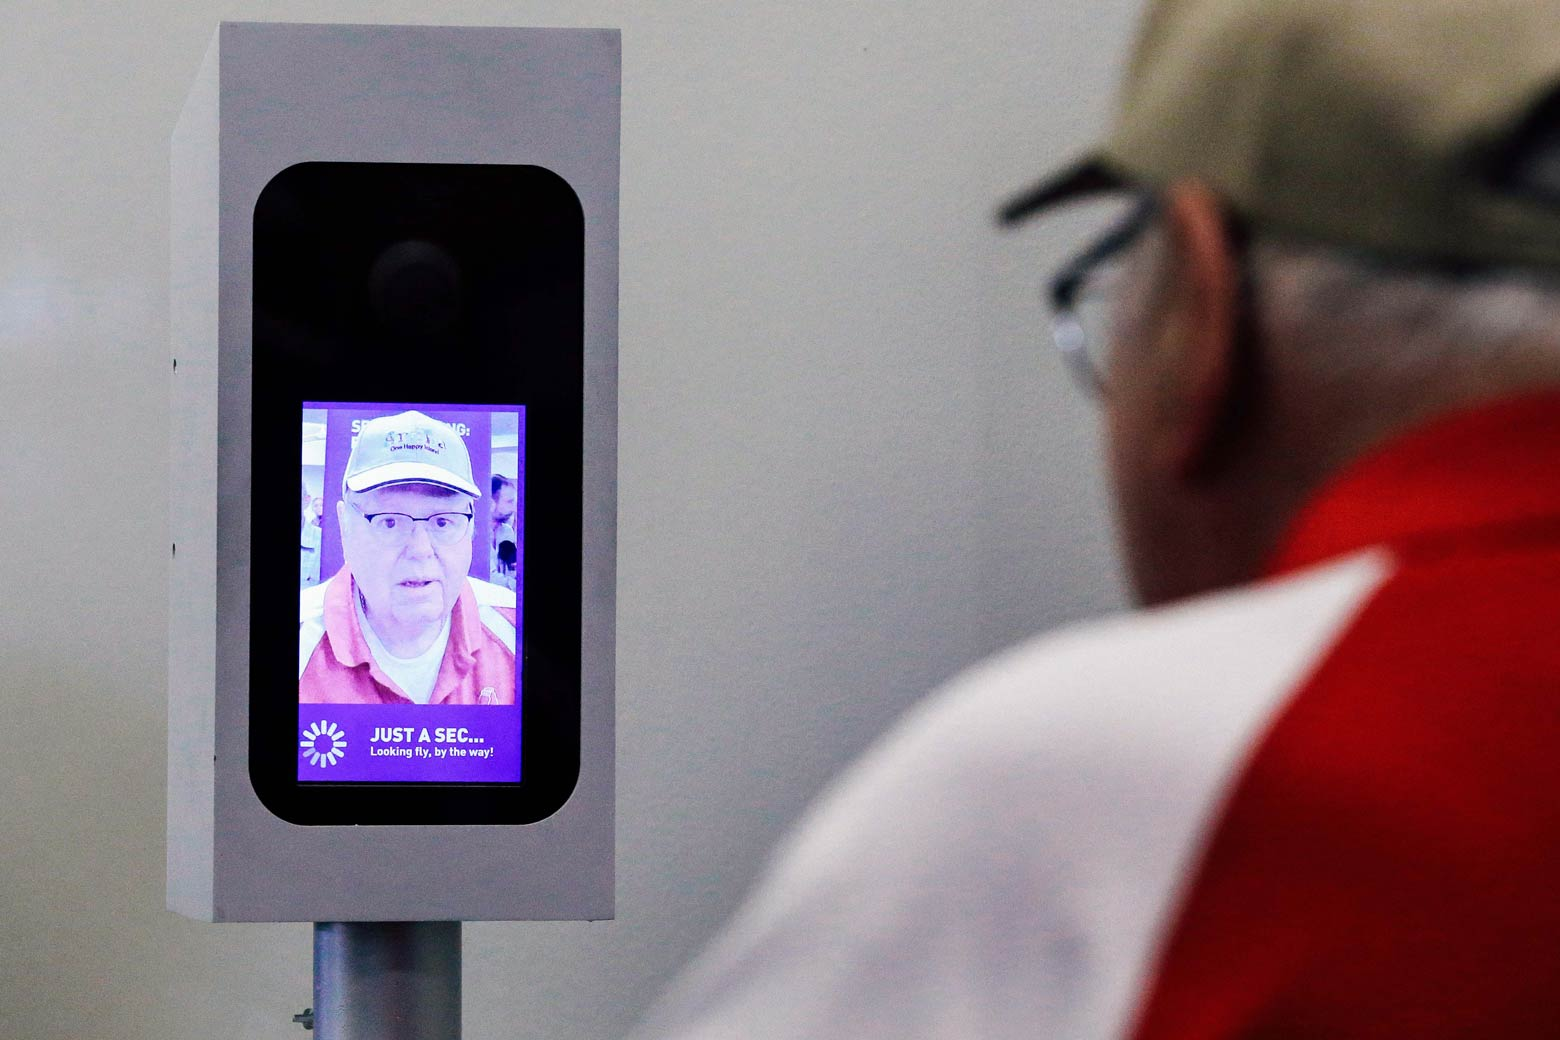 A man in a baseball cap and glasses looks into a screen on which an image of his face has been captured.